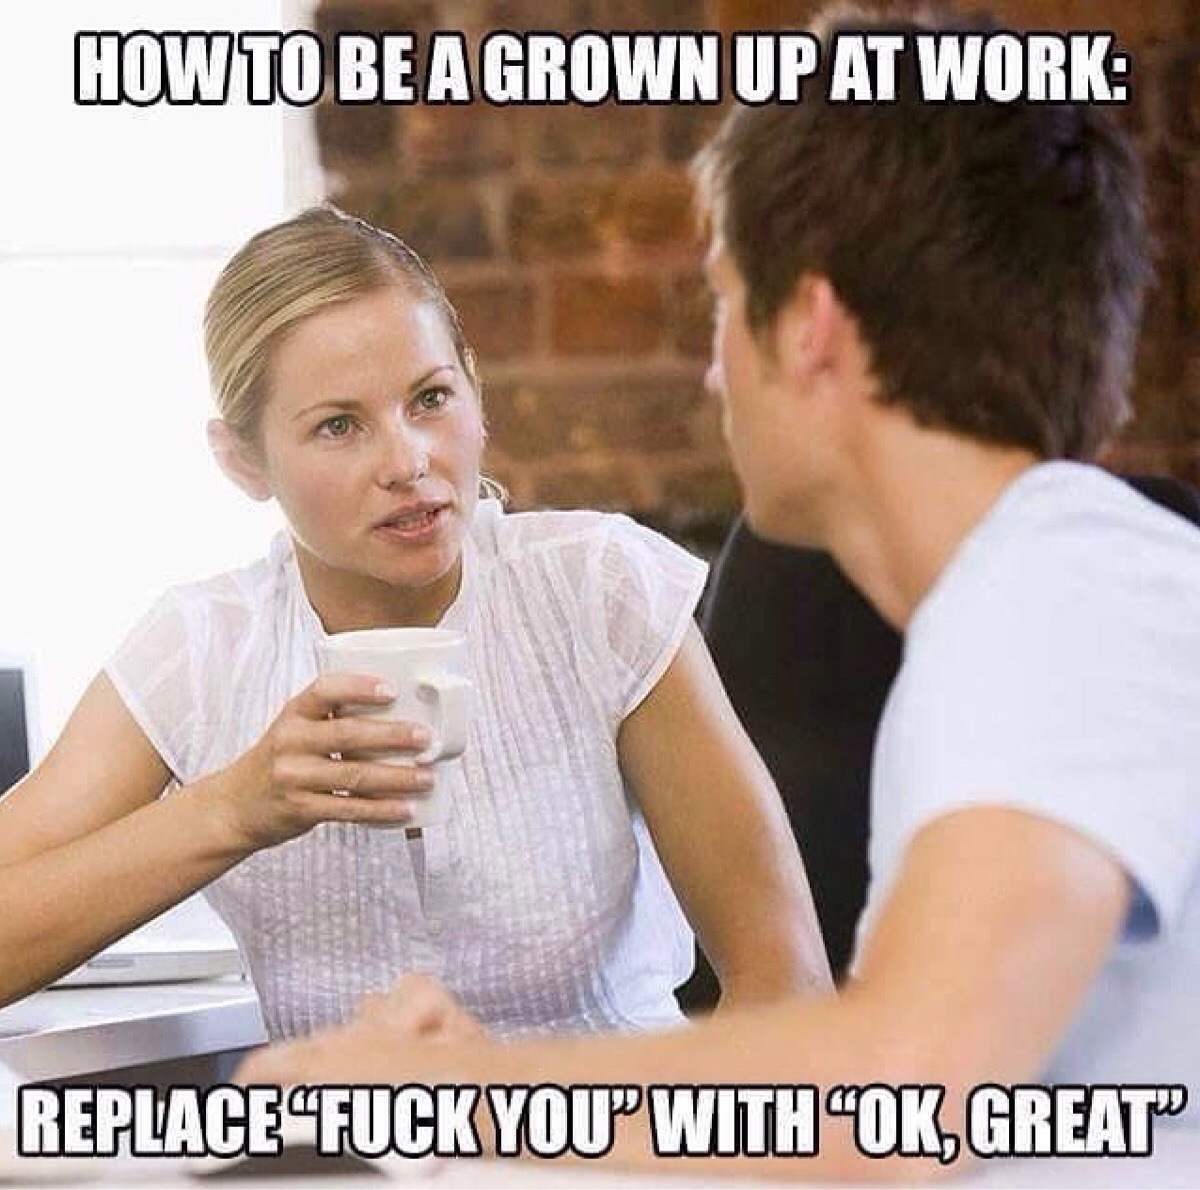 How to be grown up at work…